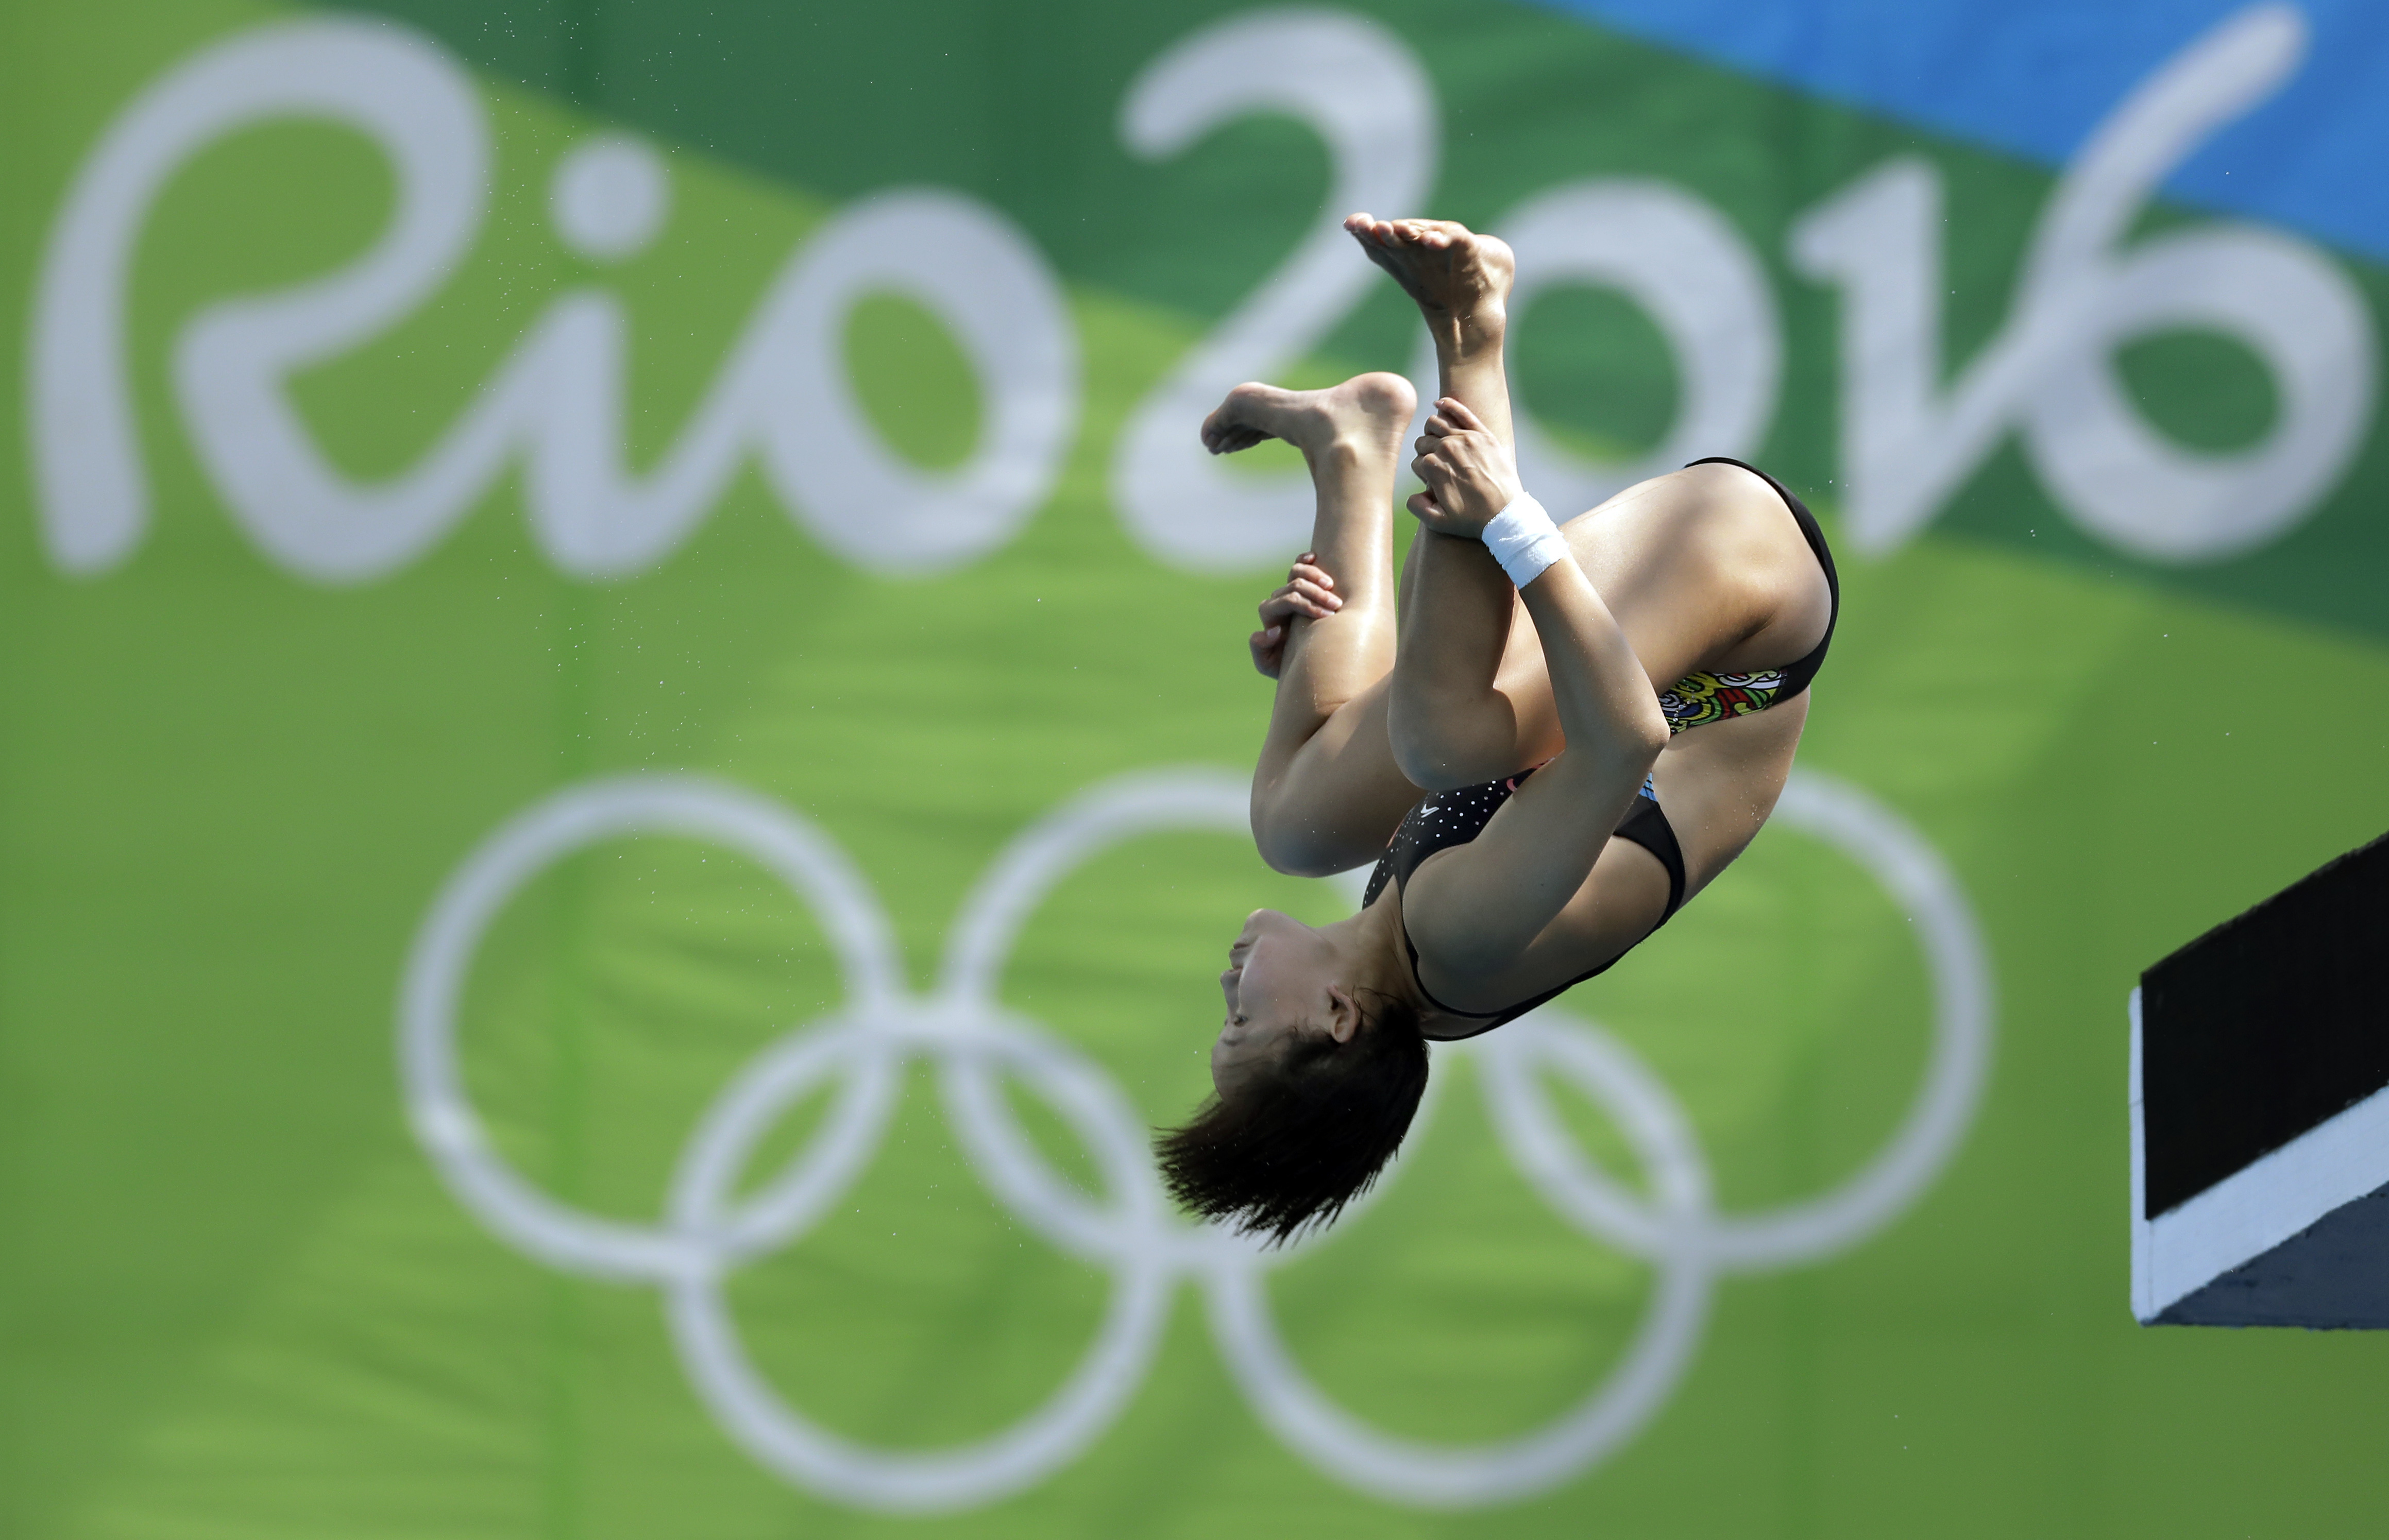 China's Ren Qian competes during the women's 10-meter platform diving semi final in the Maria Lenk Aquatic Center at the 2016 Summer Olympics in Rio de Janeiro, Brazil, Thursday, Aug. 18, 2016. (AP Photo/Michael Sohn)